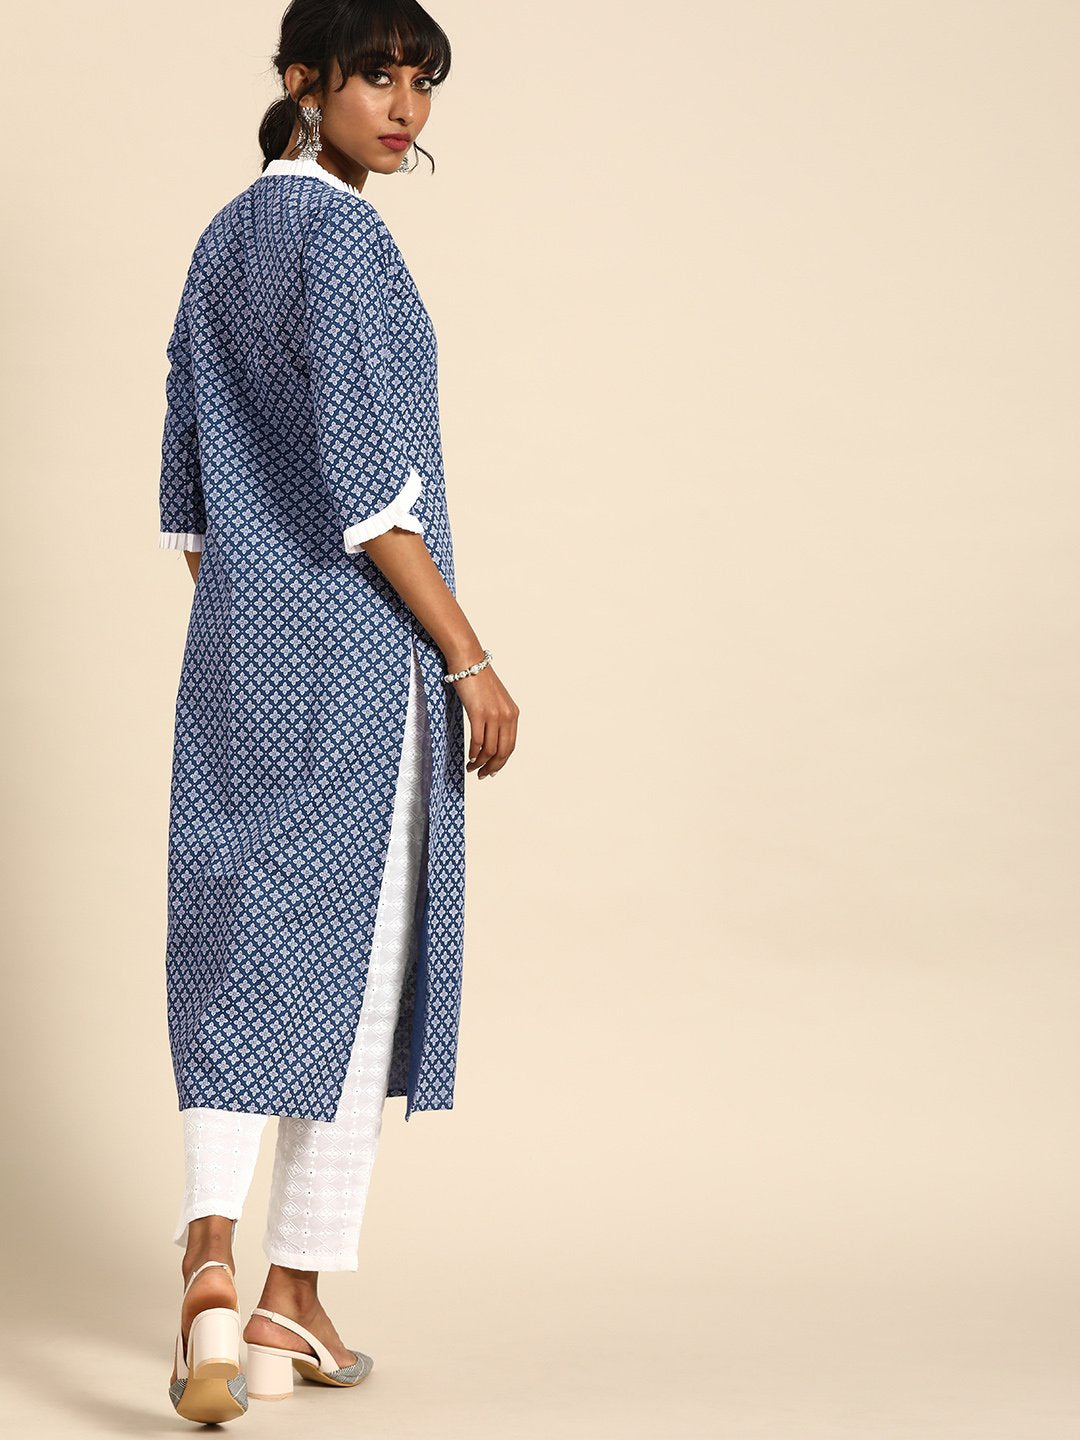 Nayo Women Indigo Blue Calf Length Three-Quarter Sleeves Straight Ethnic Motifs Printed Cotton Kurta